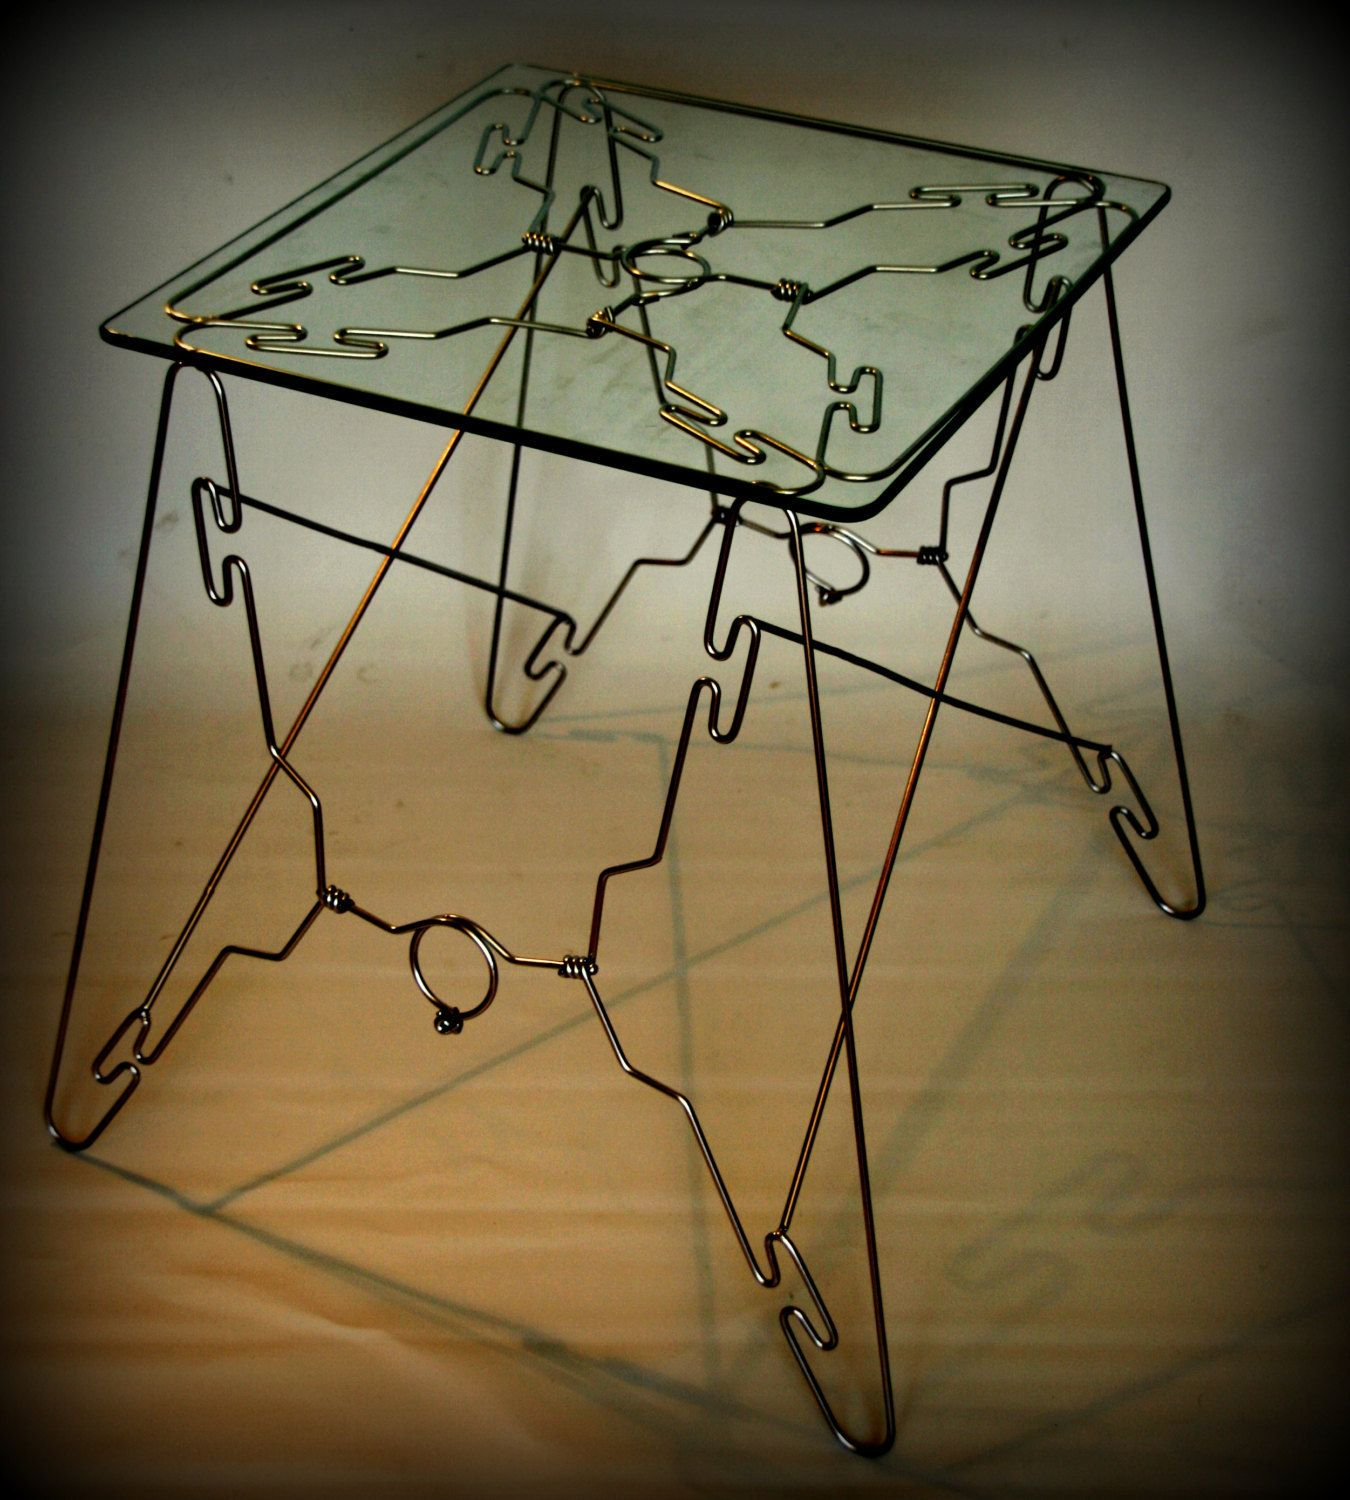 Exceptionnel Small Side Table, Coffee, Iron And Glass,hangers Table,bedroom Side  Furniture, Handmade ,peace Of Modern Art, Inspired Design Lifestyle